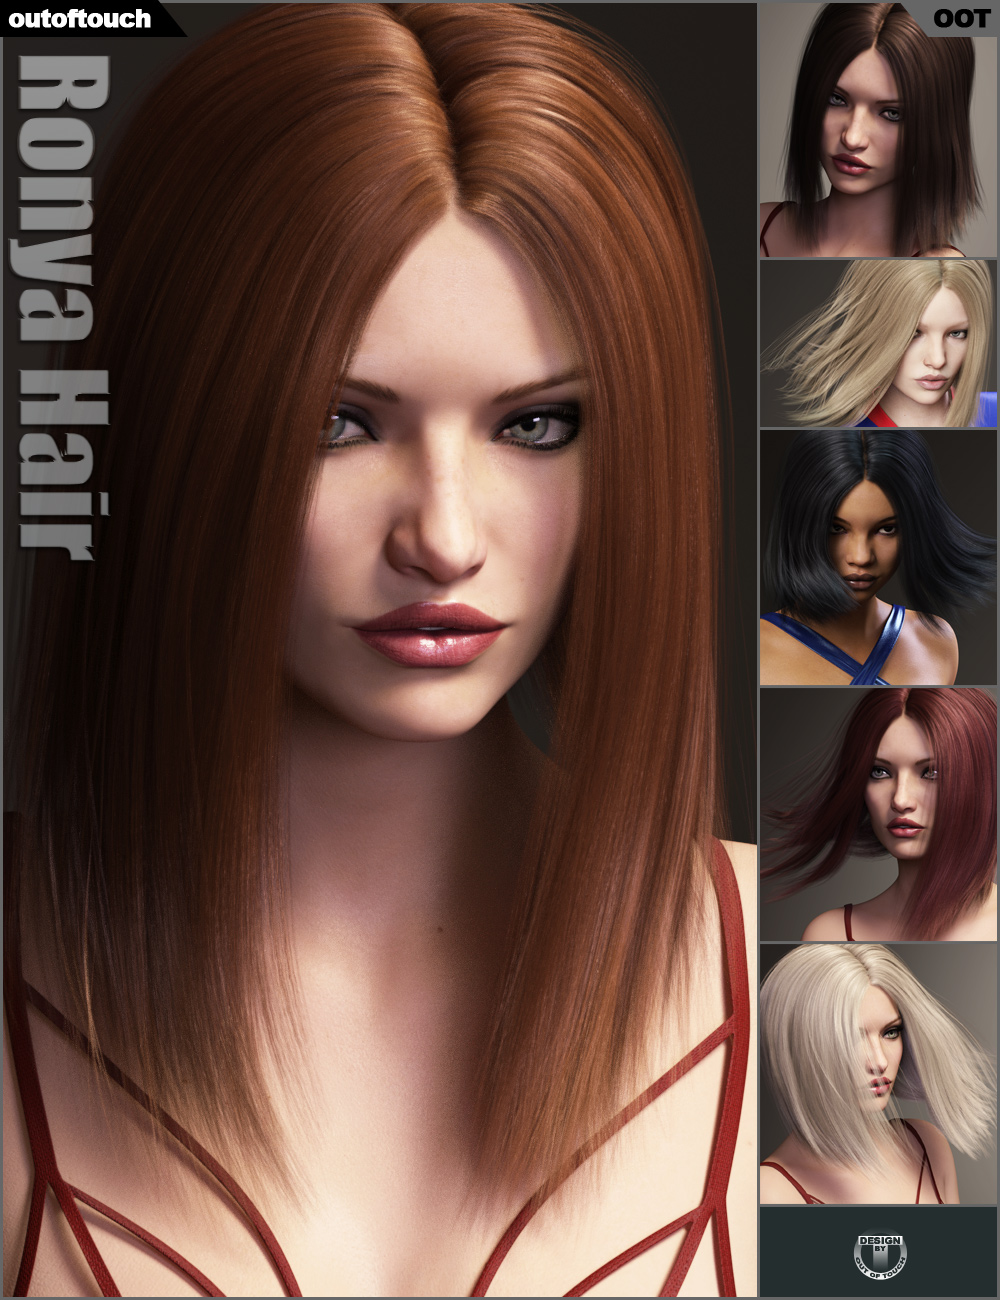 Ronya Hair by: outoftouch, 3D Models by Daz 3D